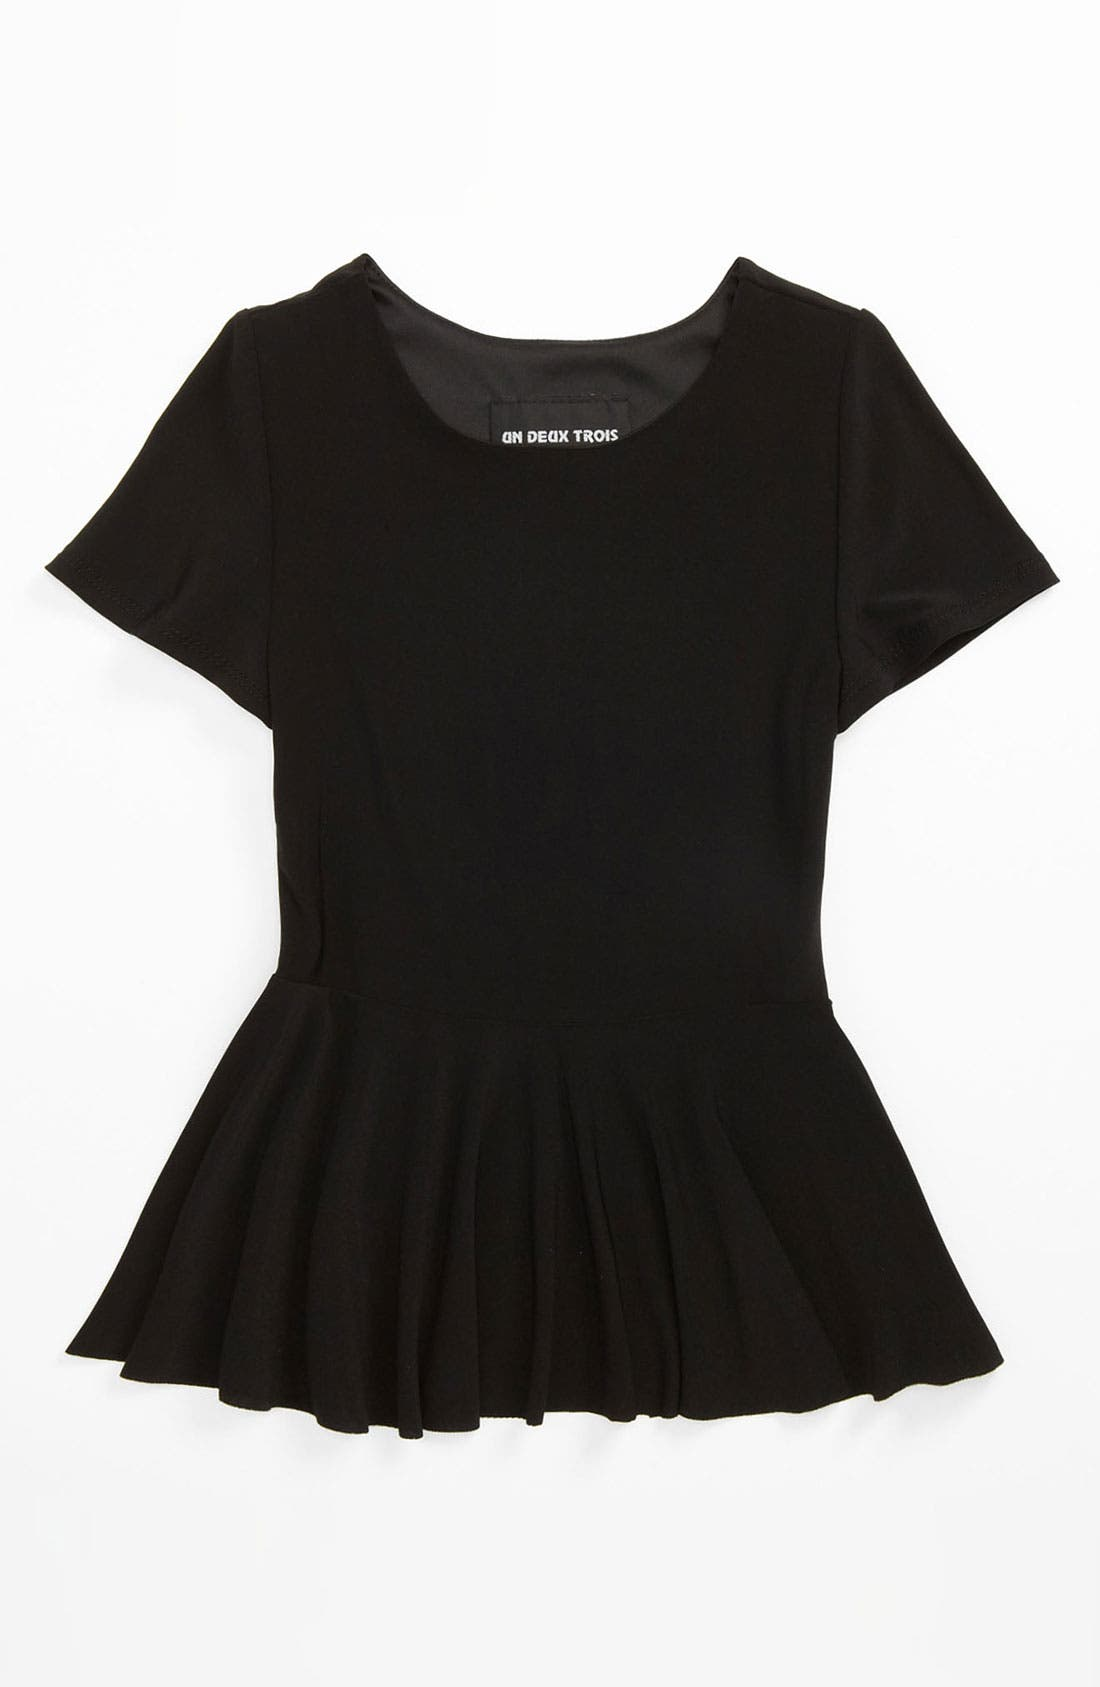 Main Image - Un Deux Trois Short Sleeve Peplum Top (Big Girls)